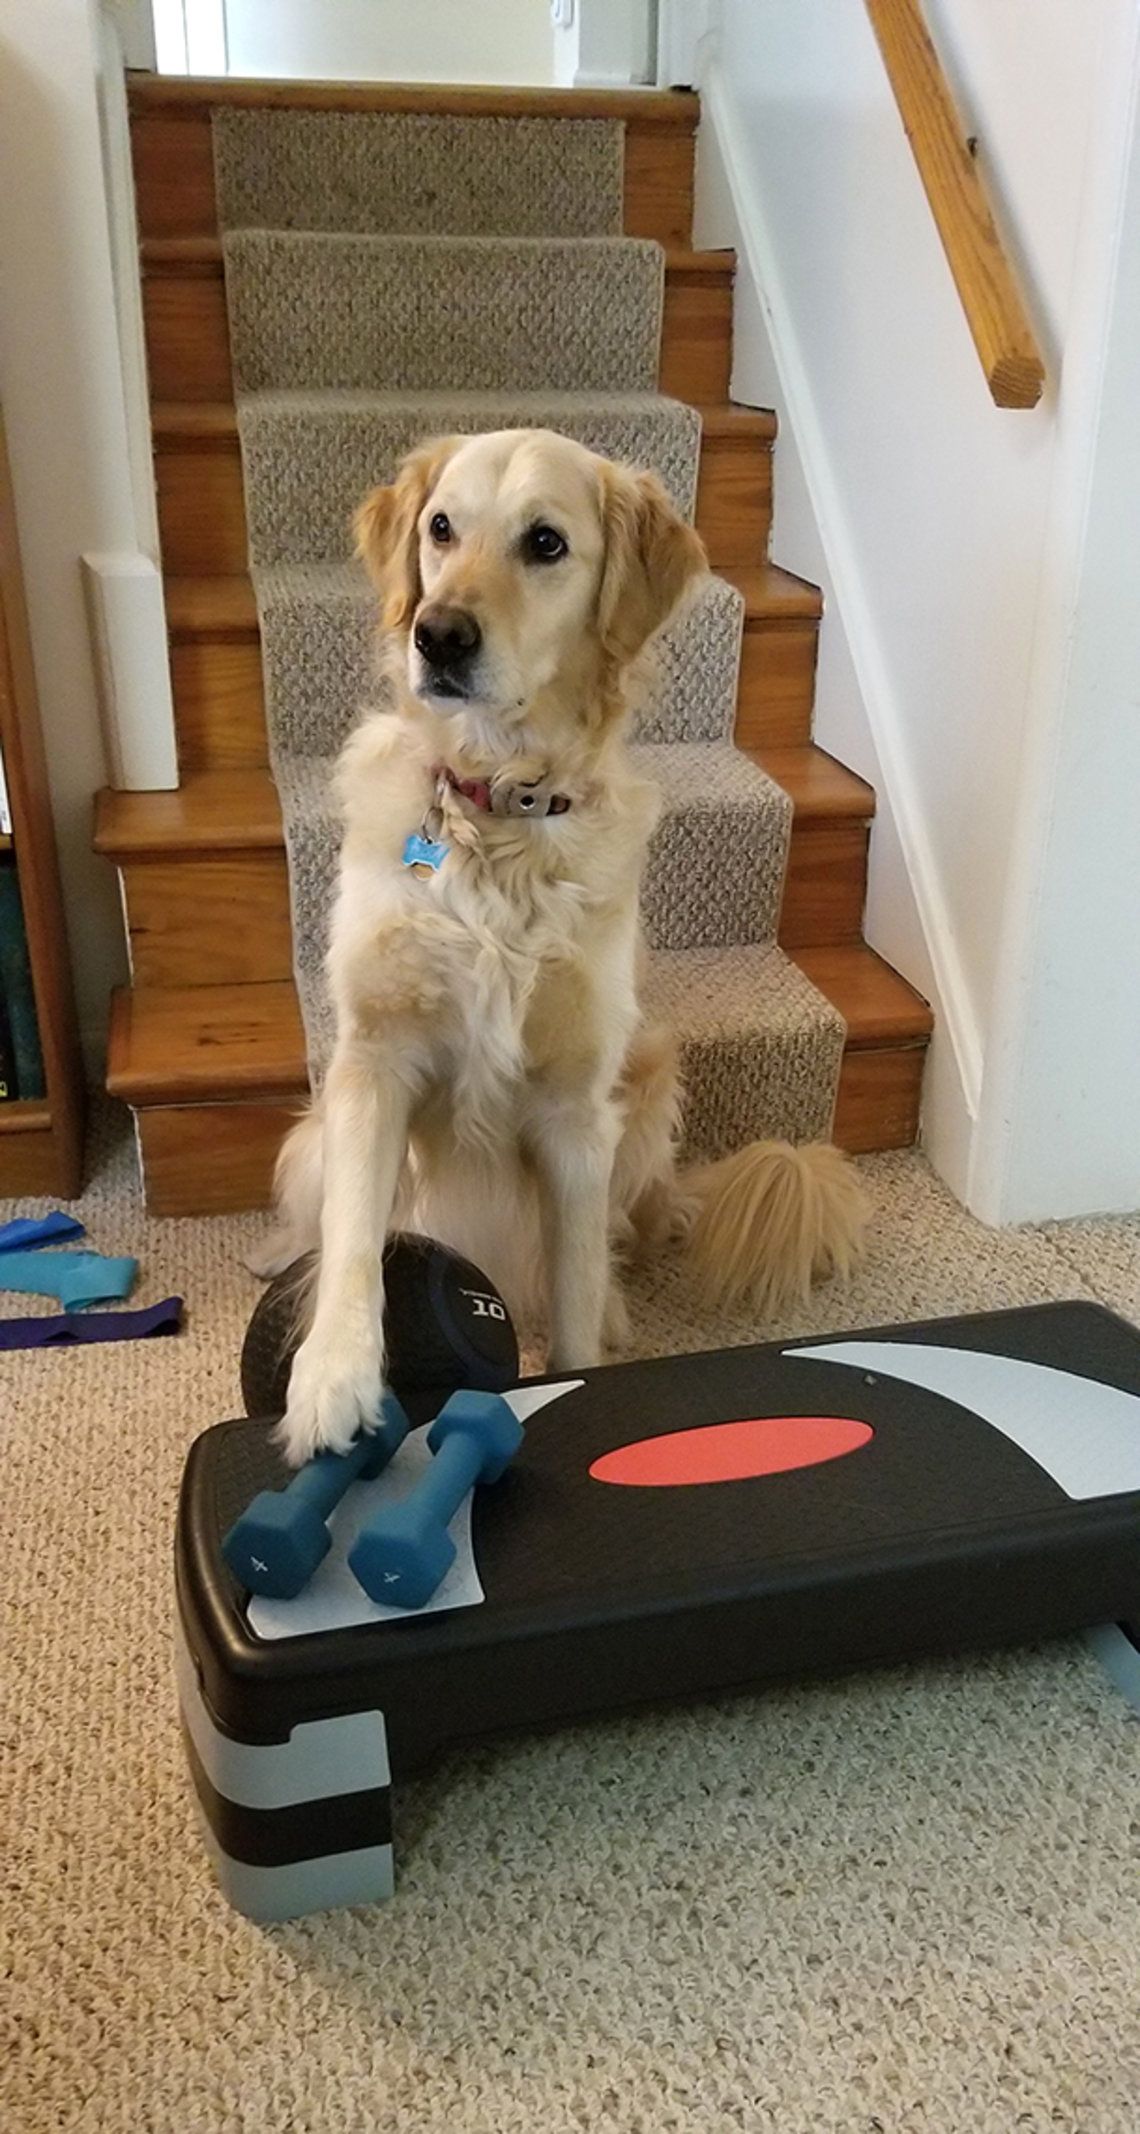 The dog has one paw on dumbbells